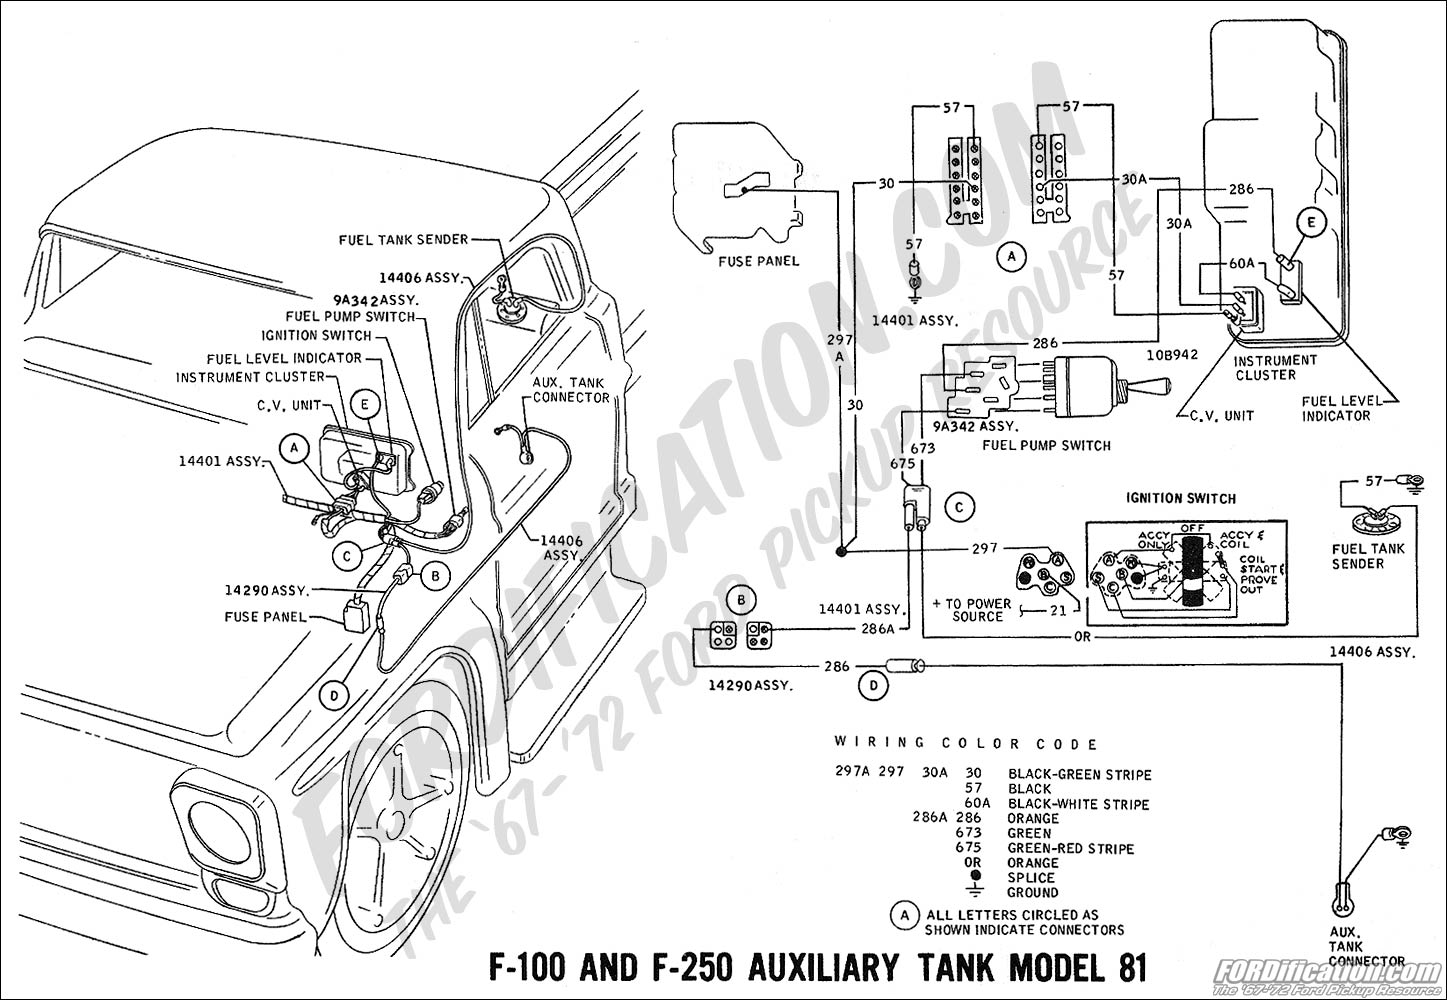 1977 Ford F 150 Fuse Box Wiring Diagrams 1999 F350 Panel Diagram Under Dash 1976 Schematic